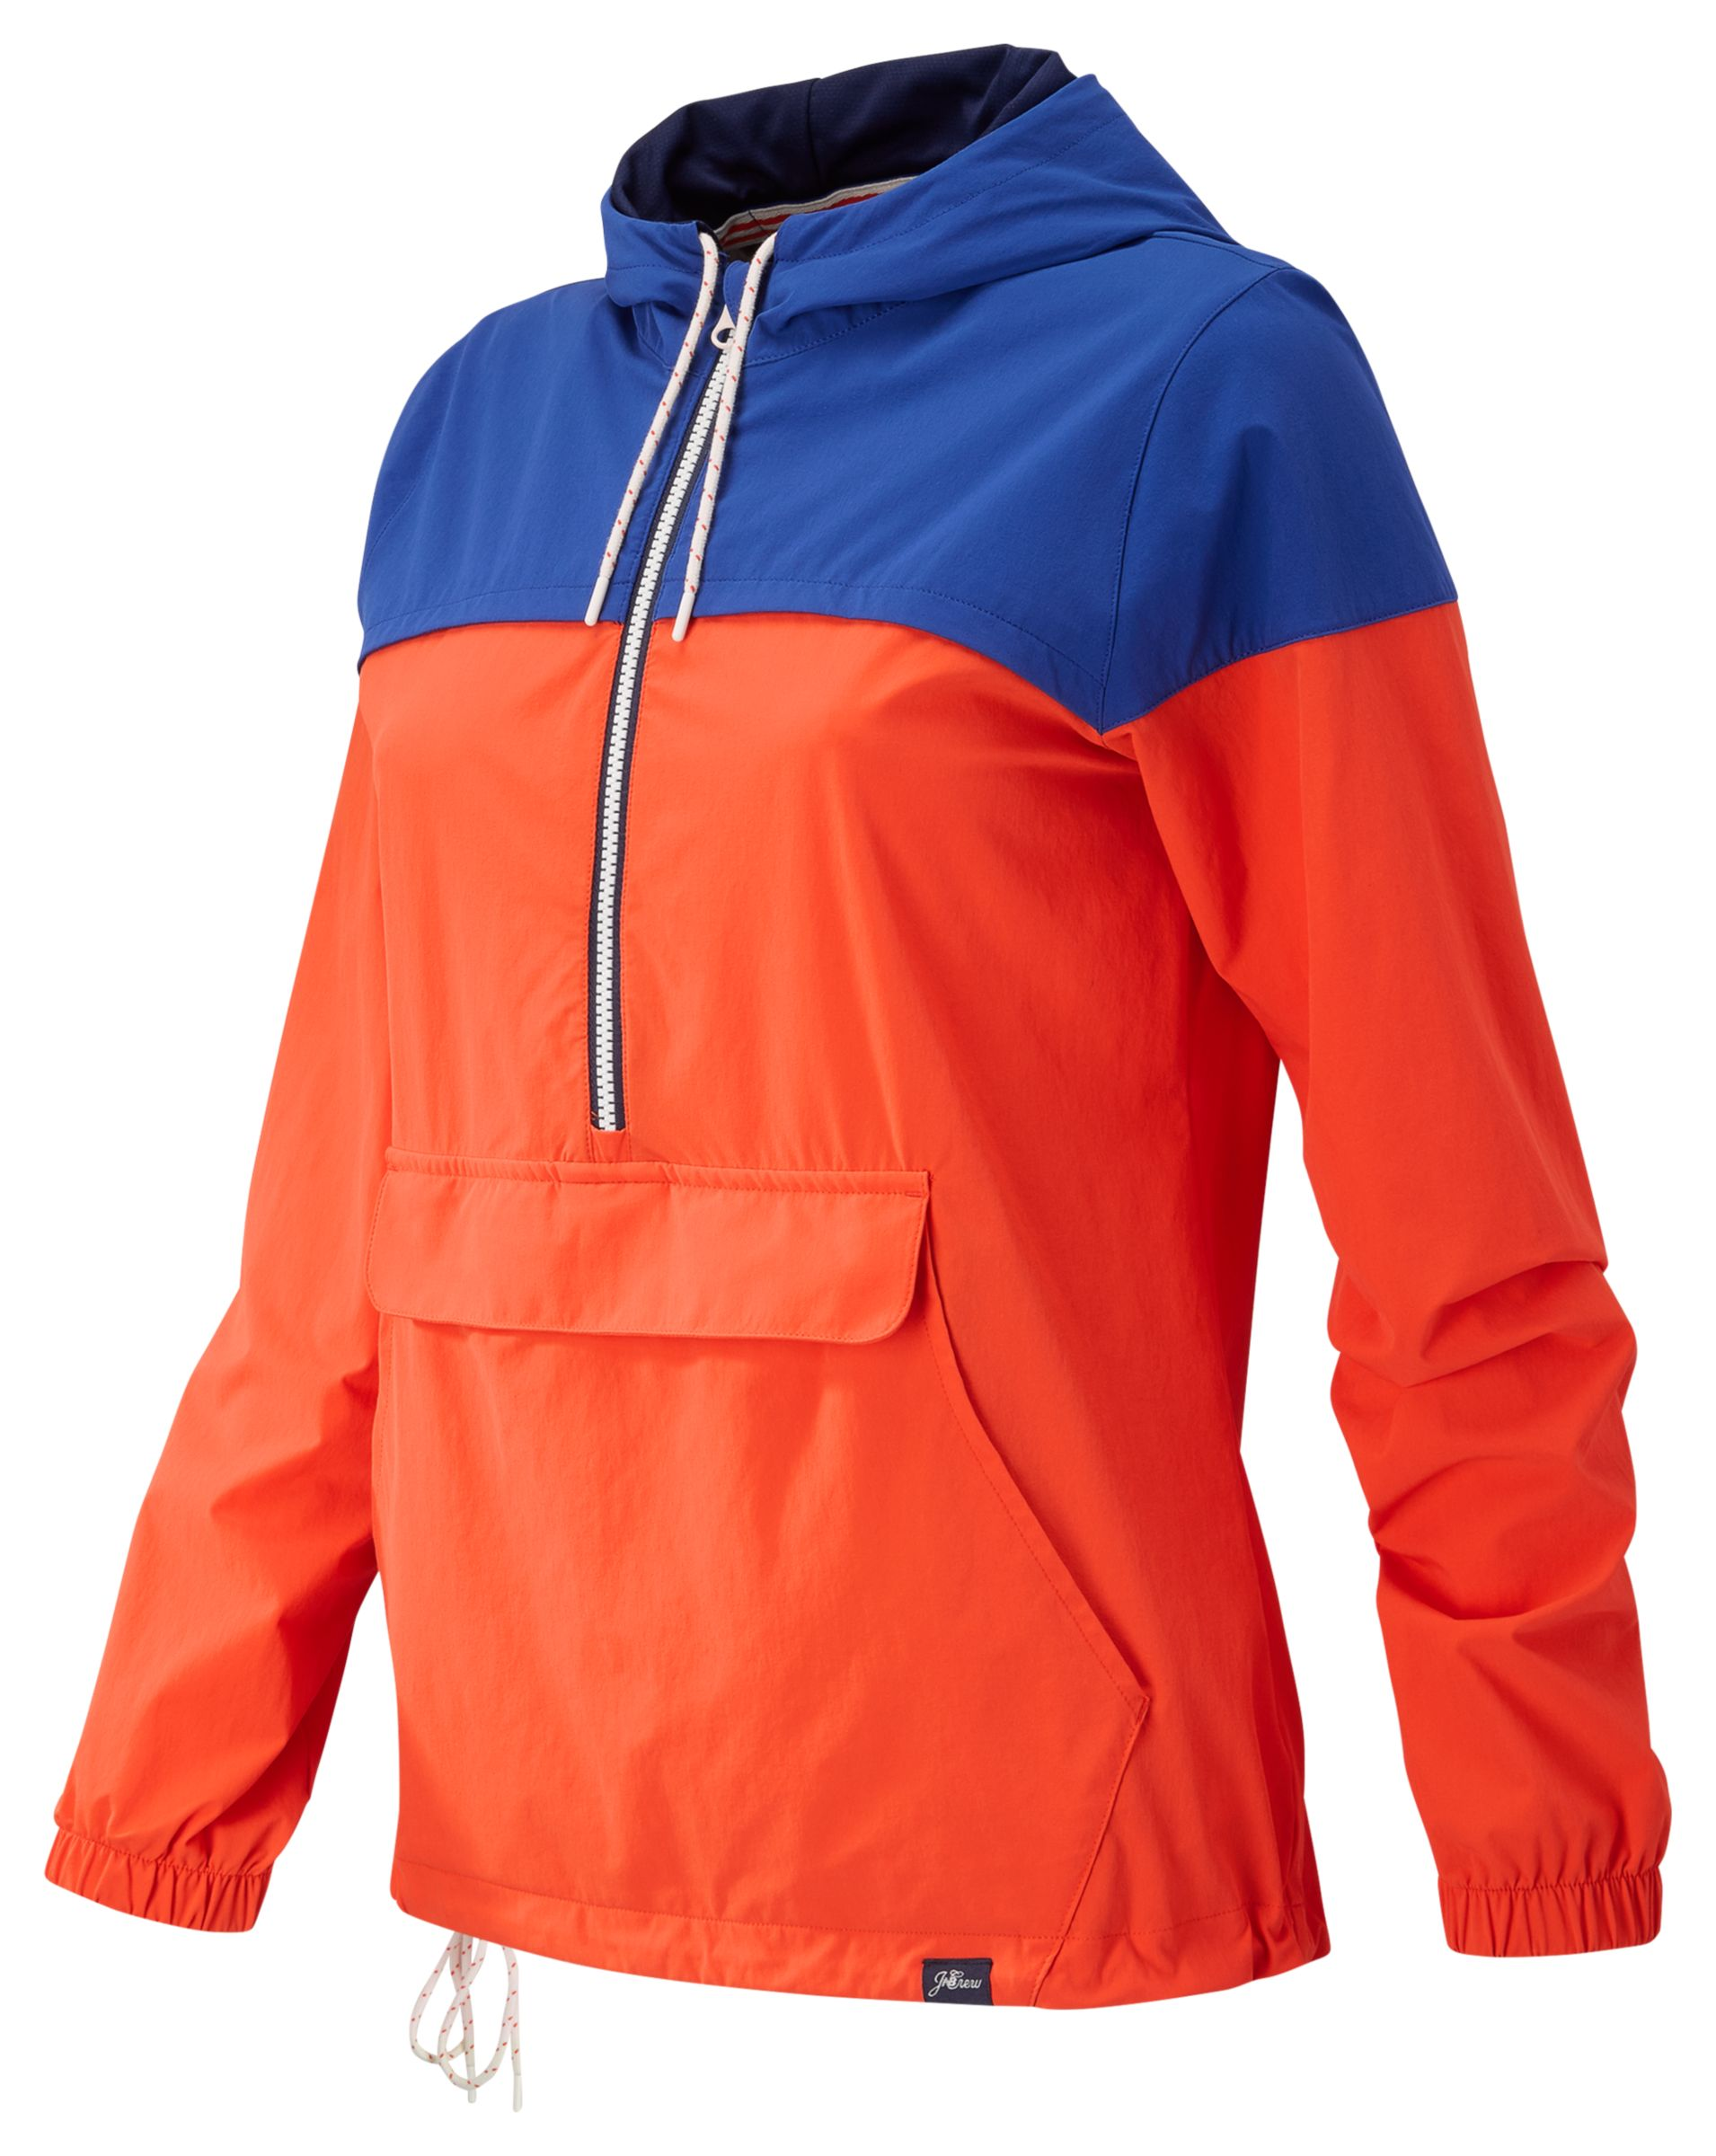 New Balance : J.Crew 90s Windbreaker : Women's Casual : WJ63559FBL